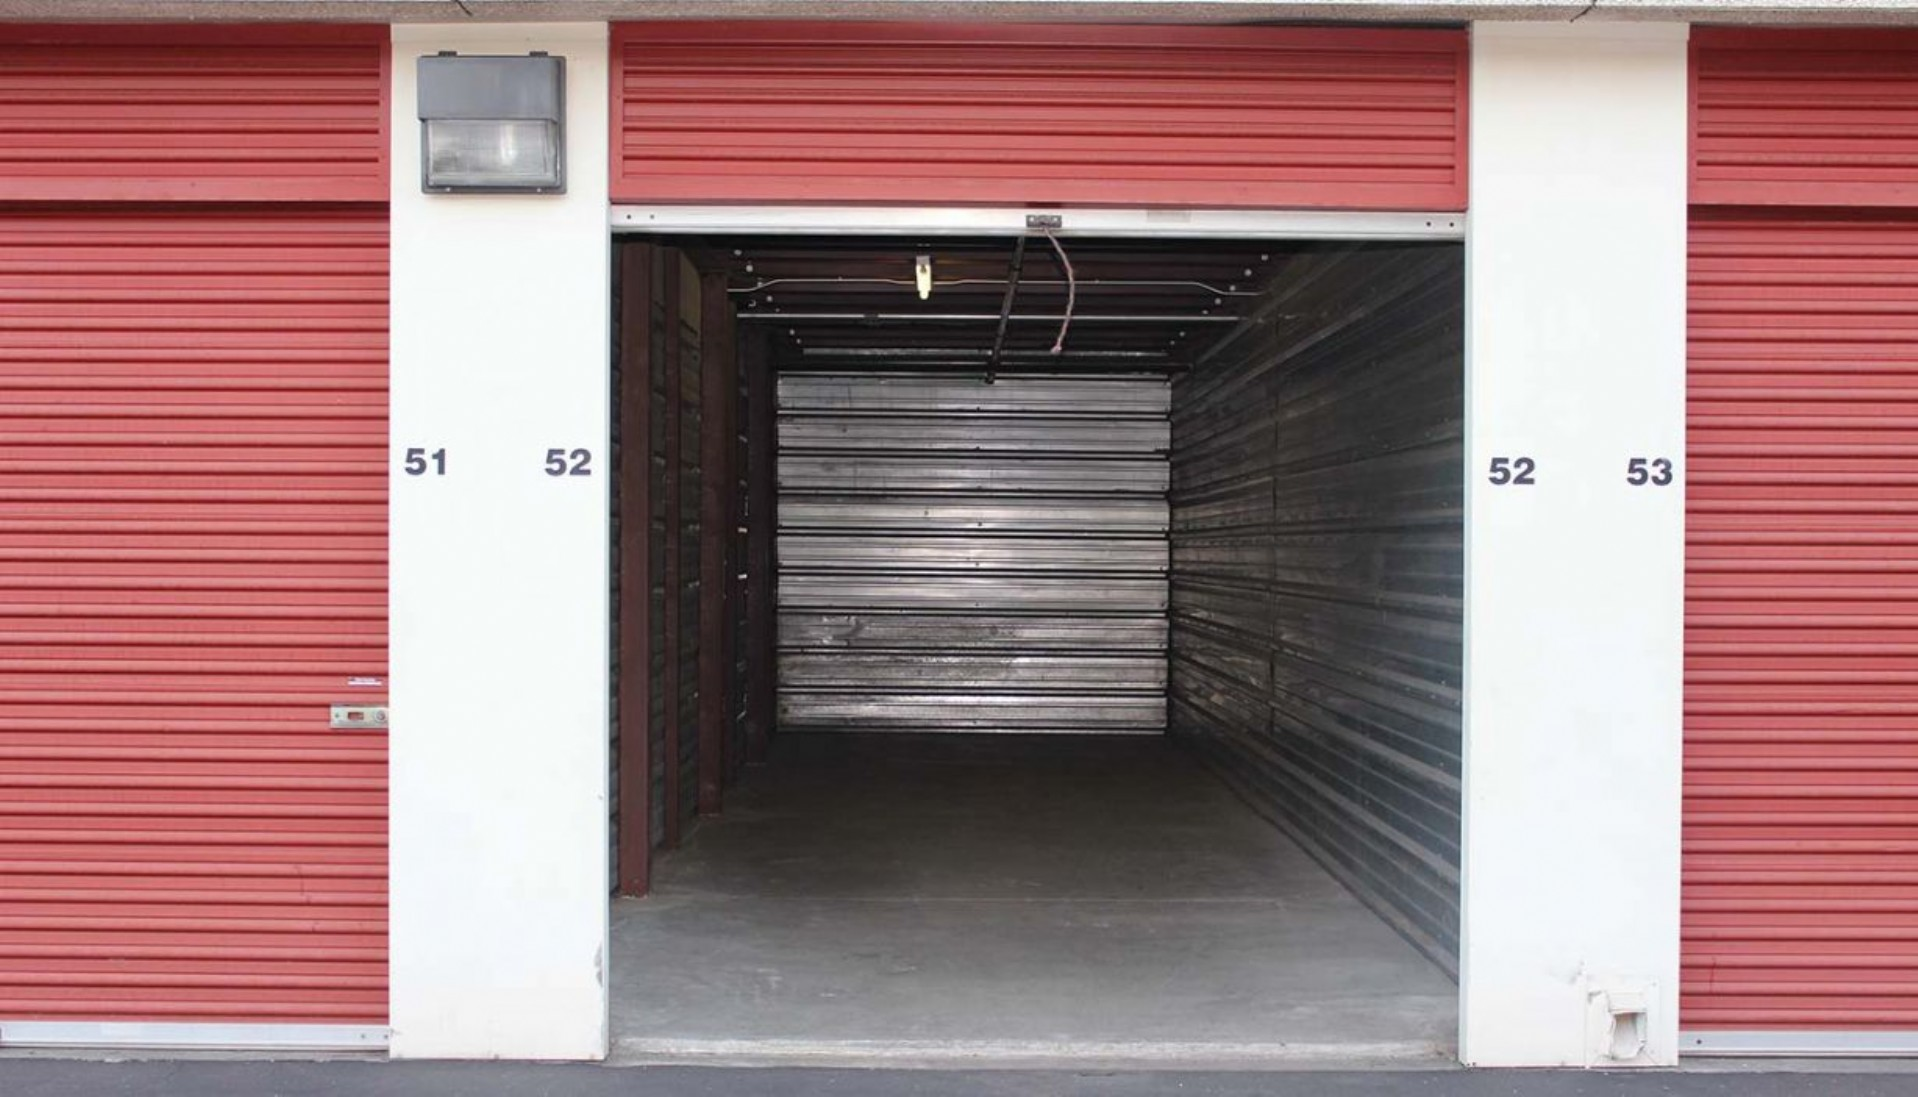 Garage sized drive up storage unit with metal walls and roll up door